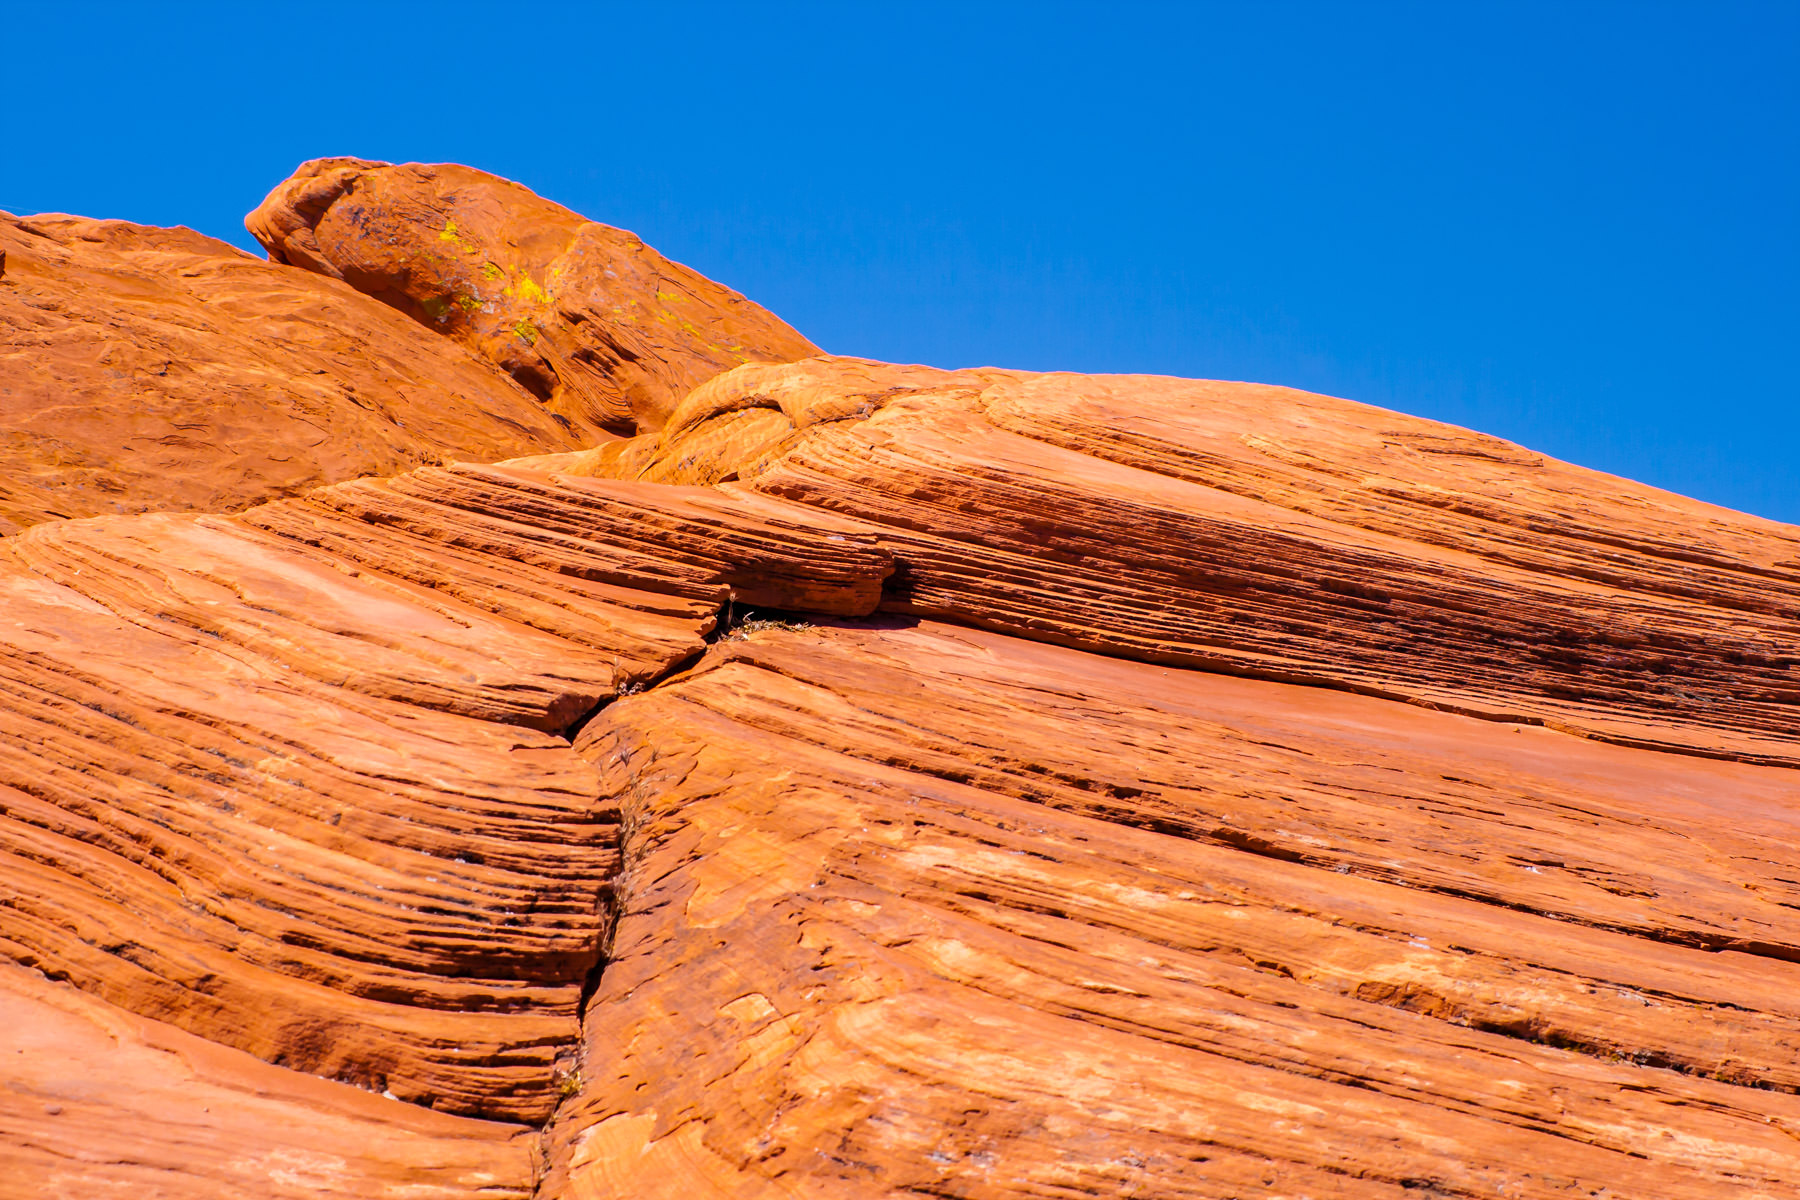 Striated rock layers from eons of erosion at Valley of Fire, Nevada.